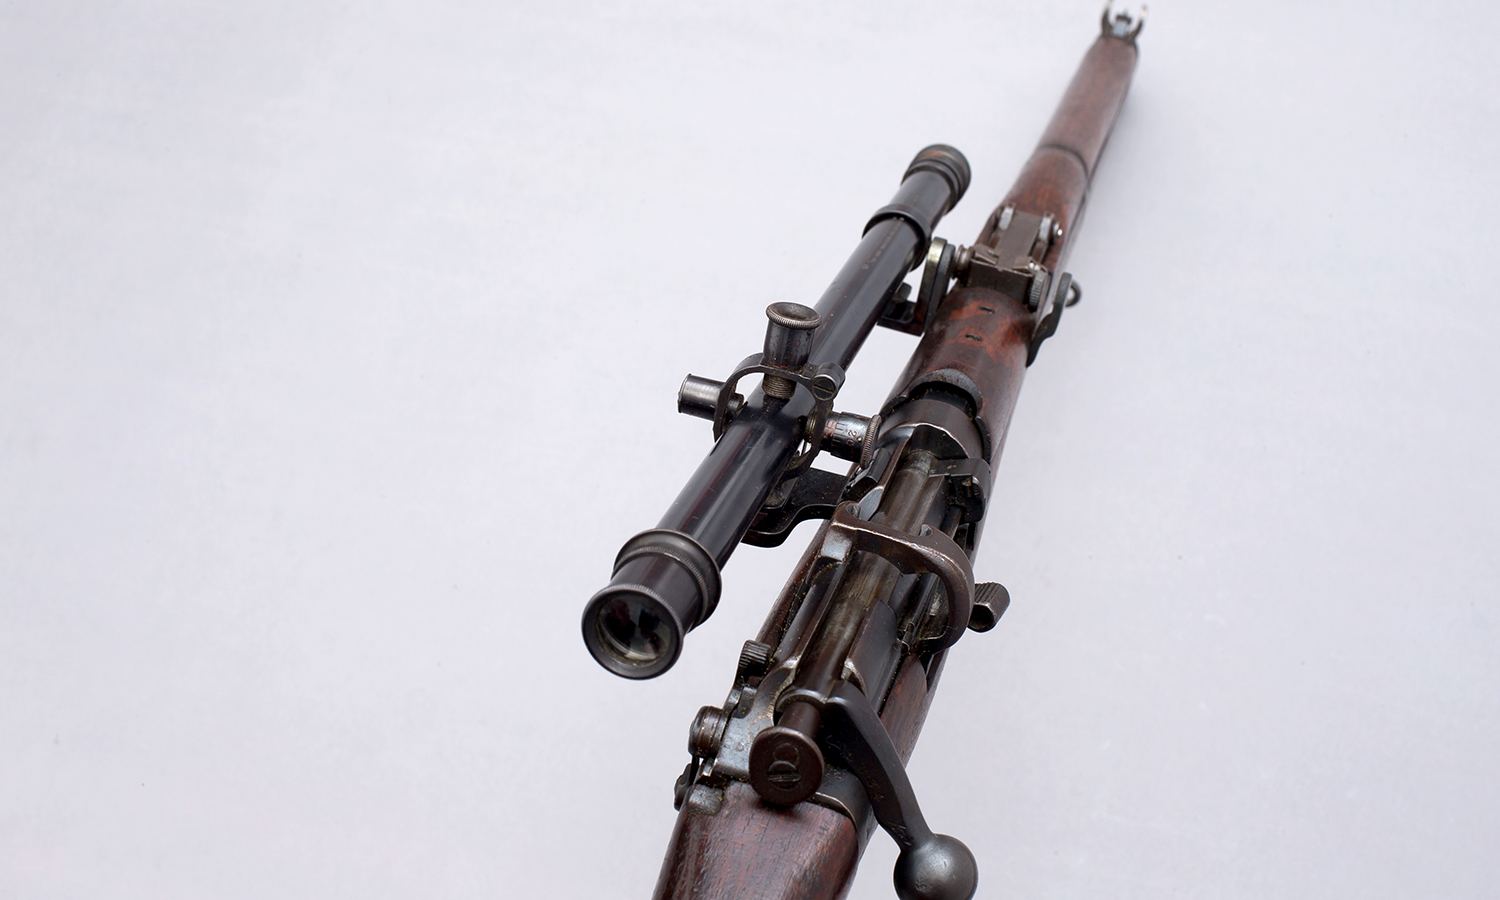 Lee-Enfield SMLE A5 Telescopic Scope 4